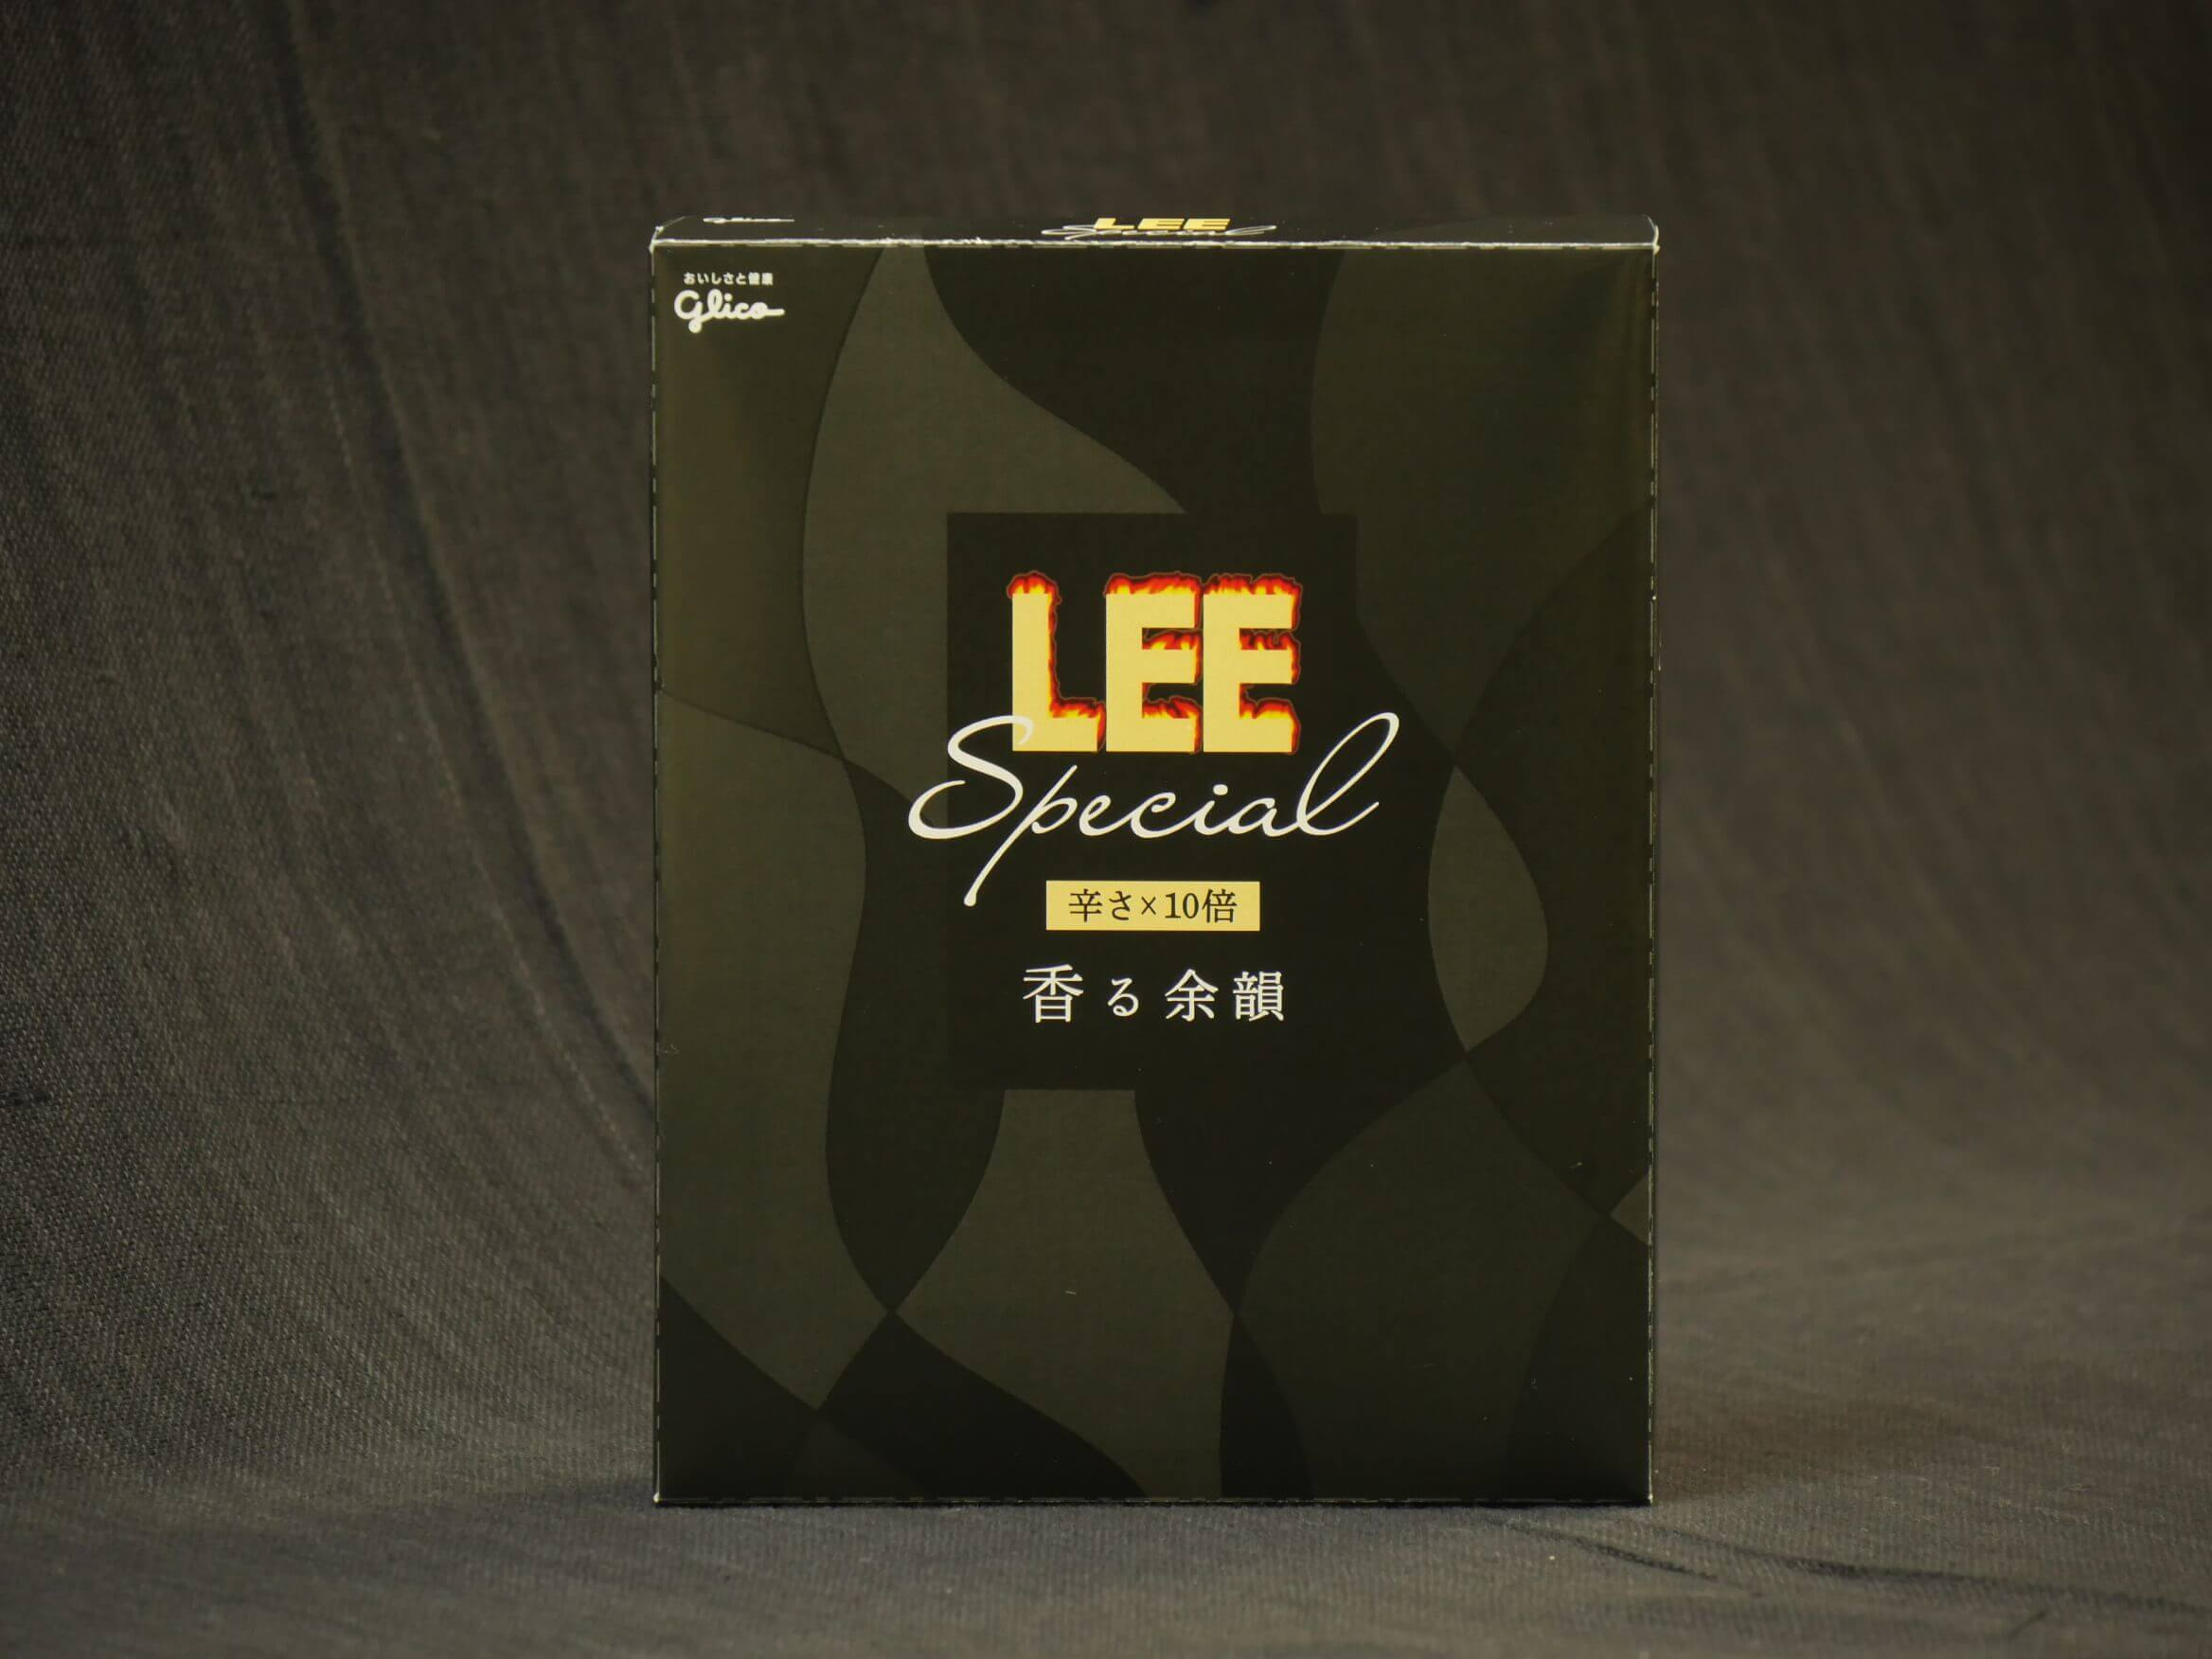 LEE Special 〜香る余韻〜